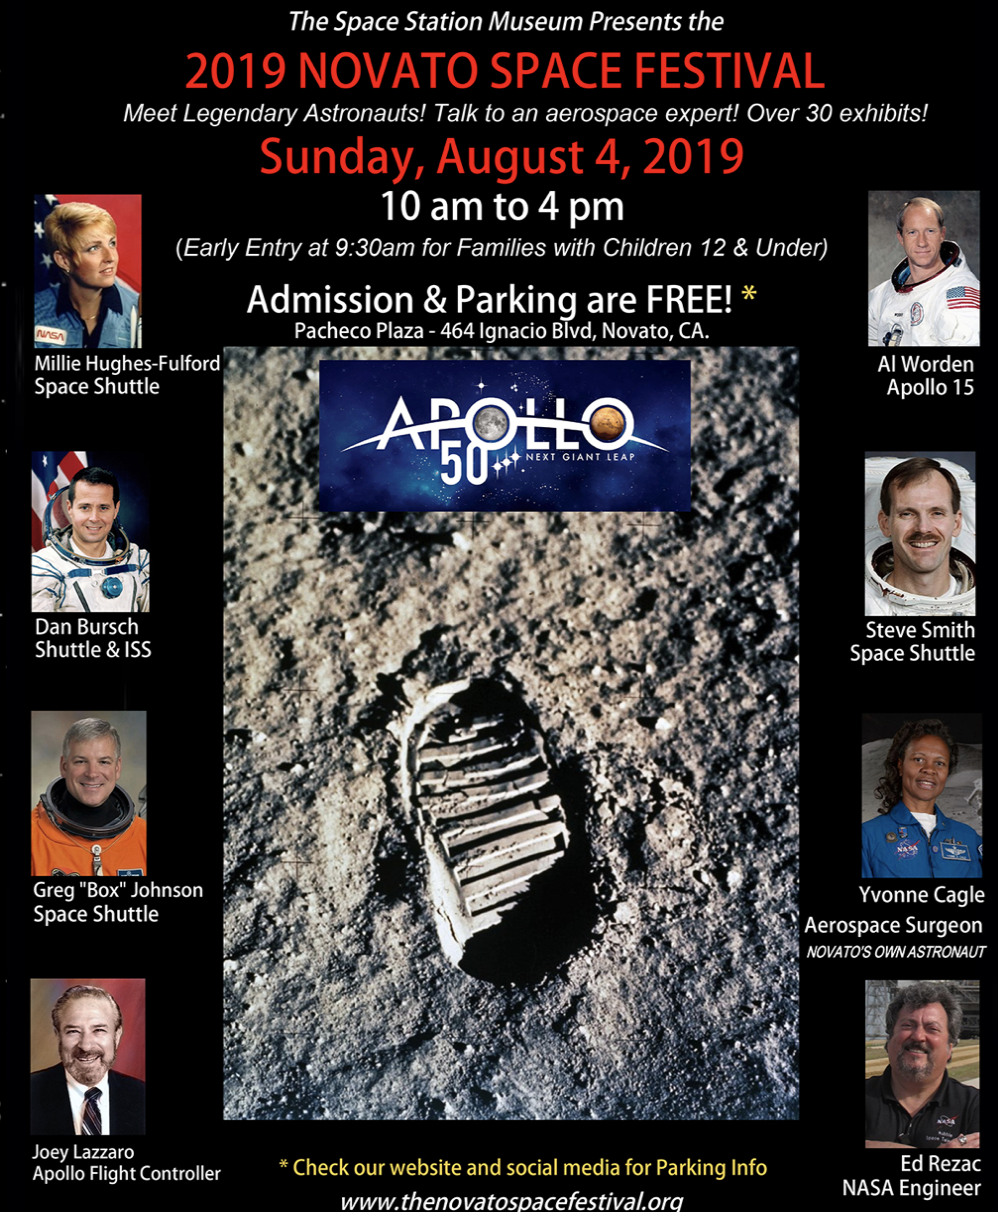 2019 Novato Space Festival - August 4th Meet legendary Astronauts! See our museum's exhibits, Visit with numerous space organizations, Activities for space enthusiasts of all ages!